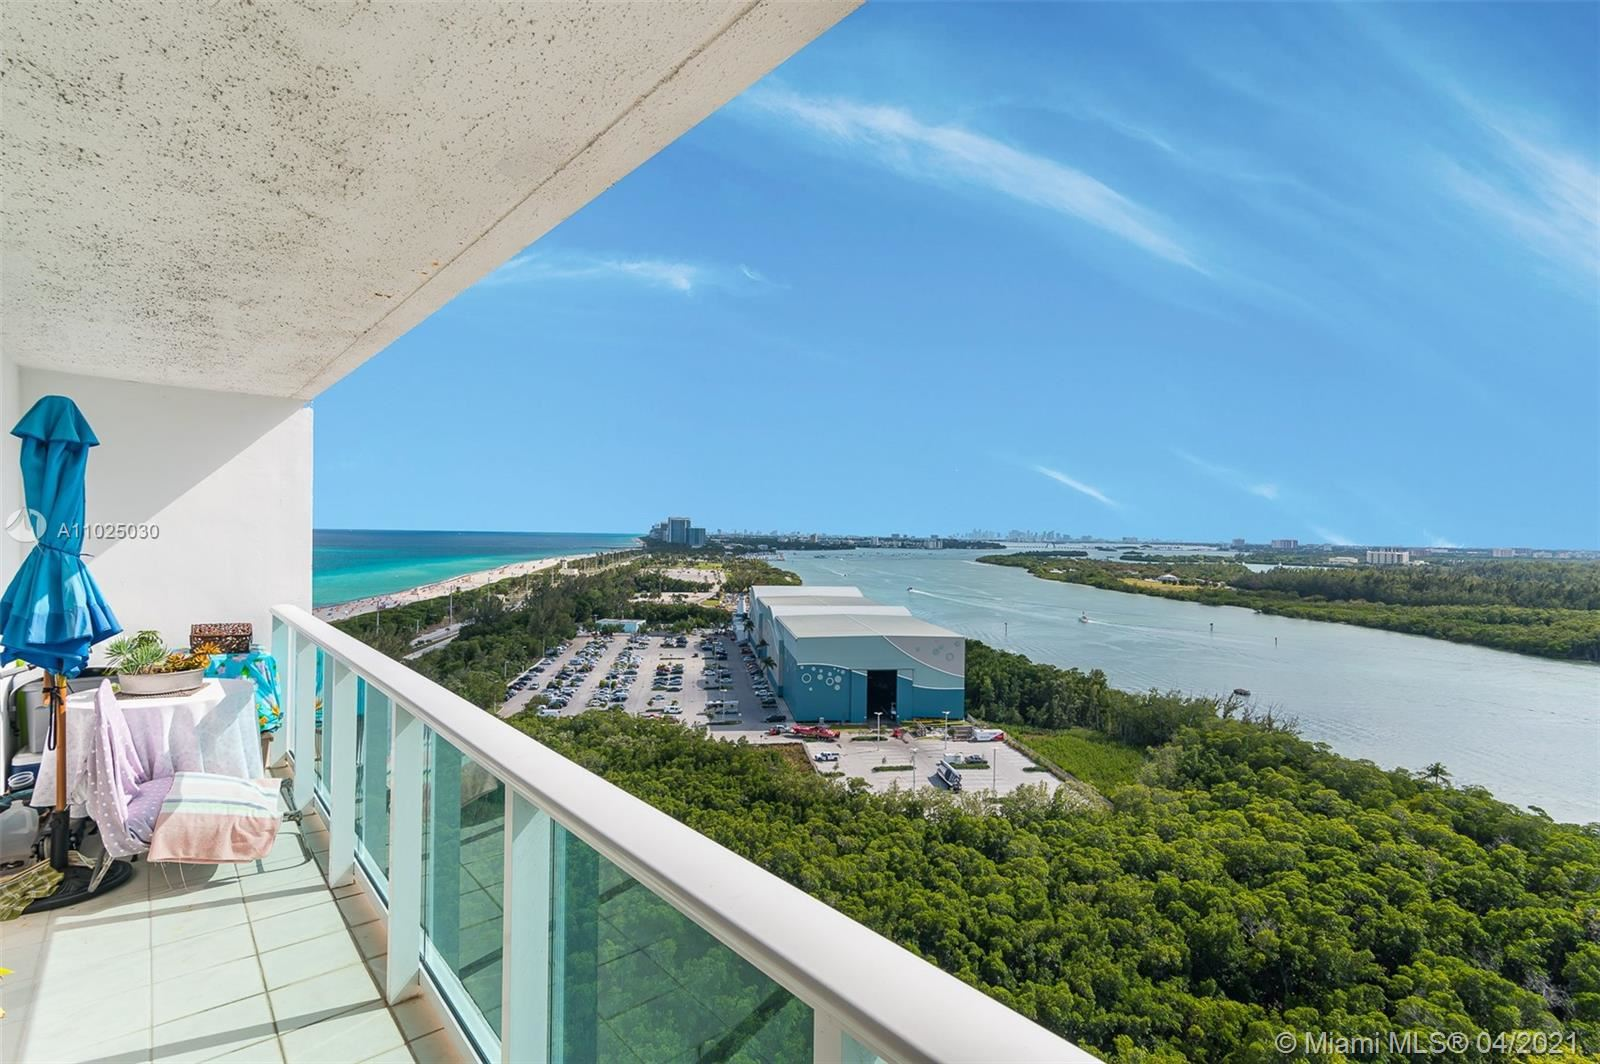 100 Bayview Dr #2121, Sunny Isles, FL 33160 - #: A11025030